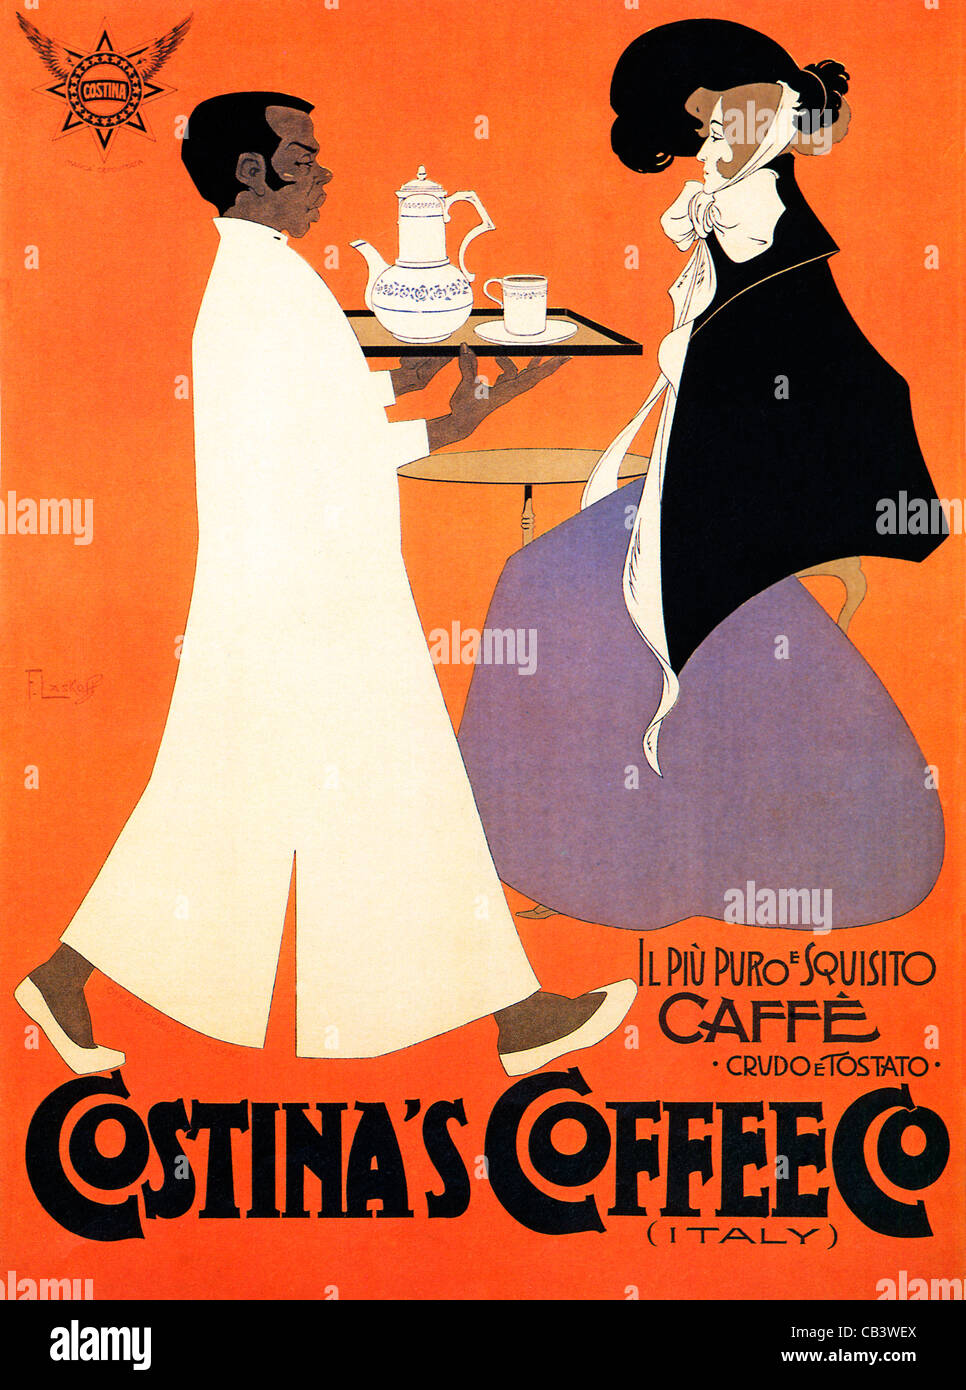 Costinas Coffee, 1901 Art Nouveau poster by Franz Laskoff for the Italian company, the purest and exquisite coffee - Stock Image